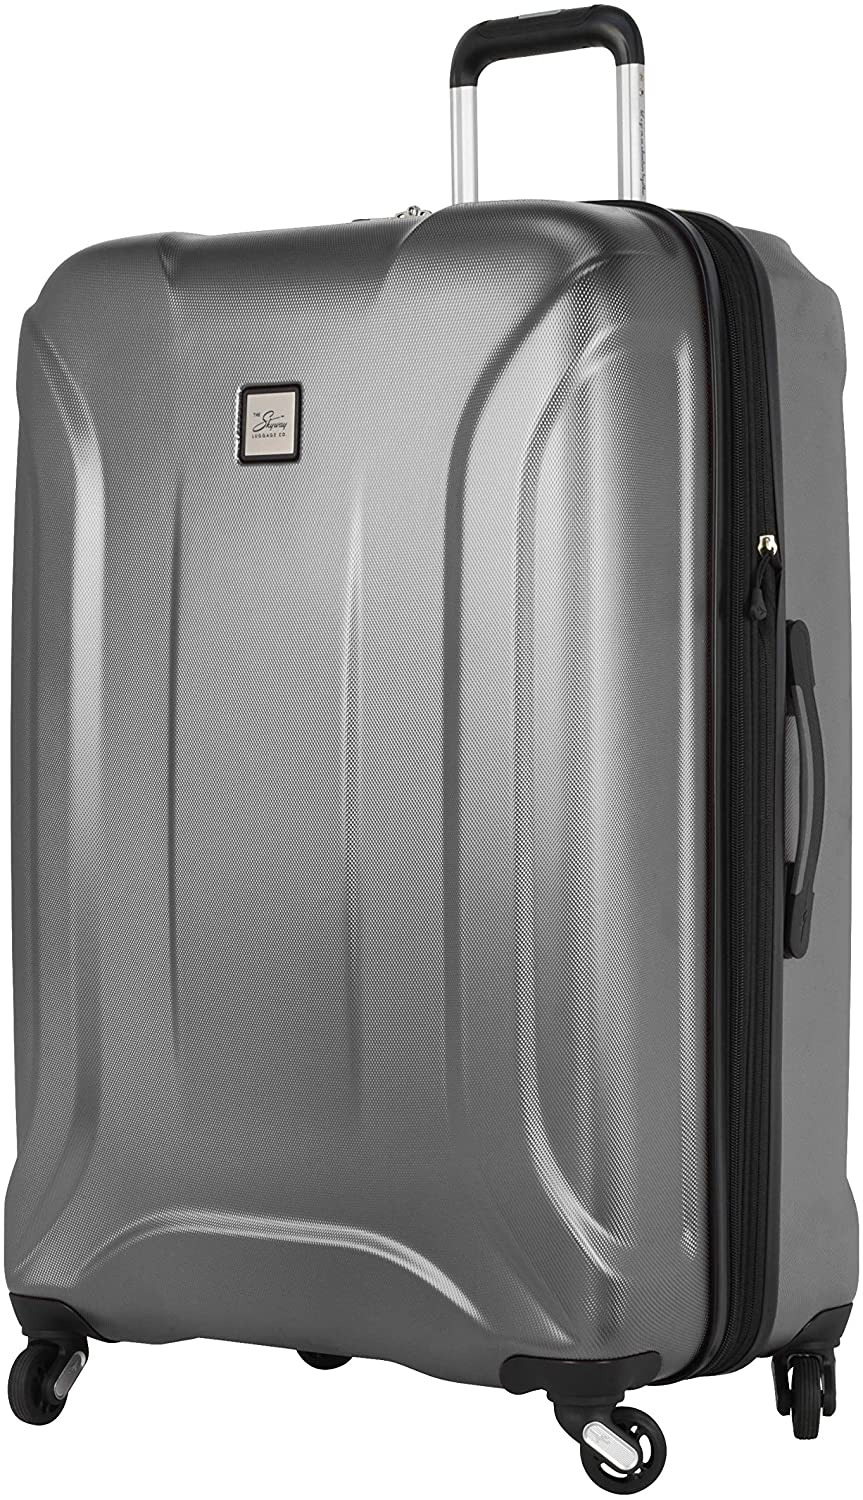 Skyway Nimbus 3.0 Hardside 4-Wheel Luggage Spinner Collection (Silver, Checked-Large 28-Inch)